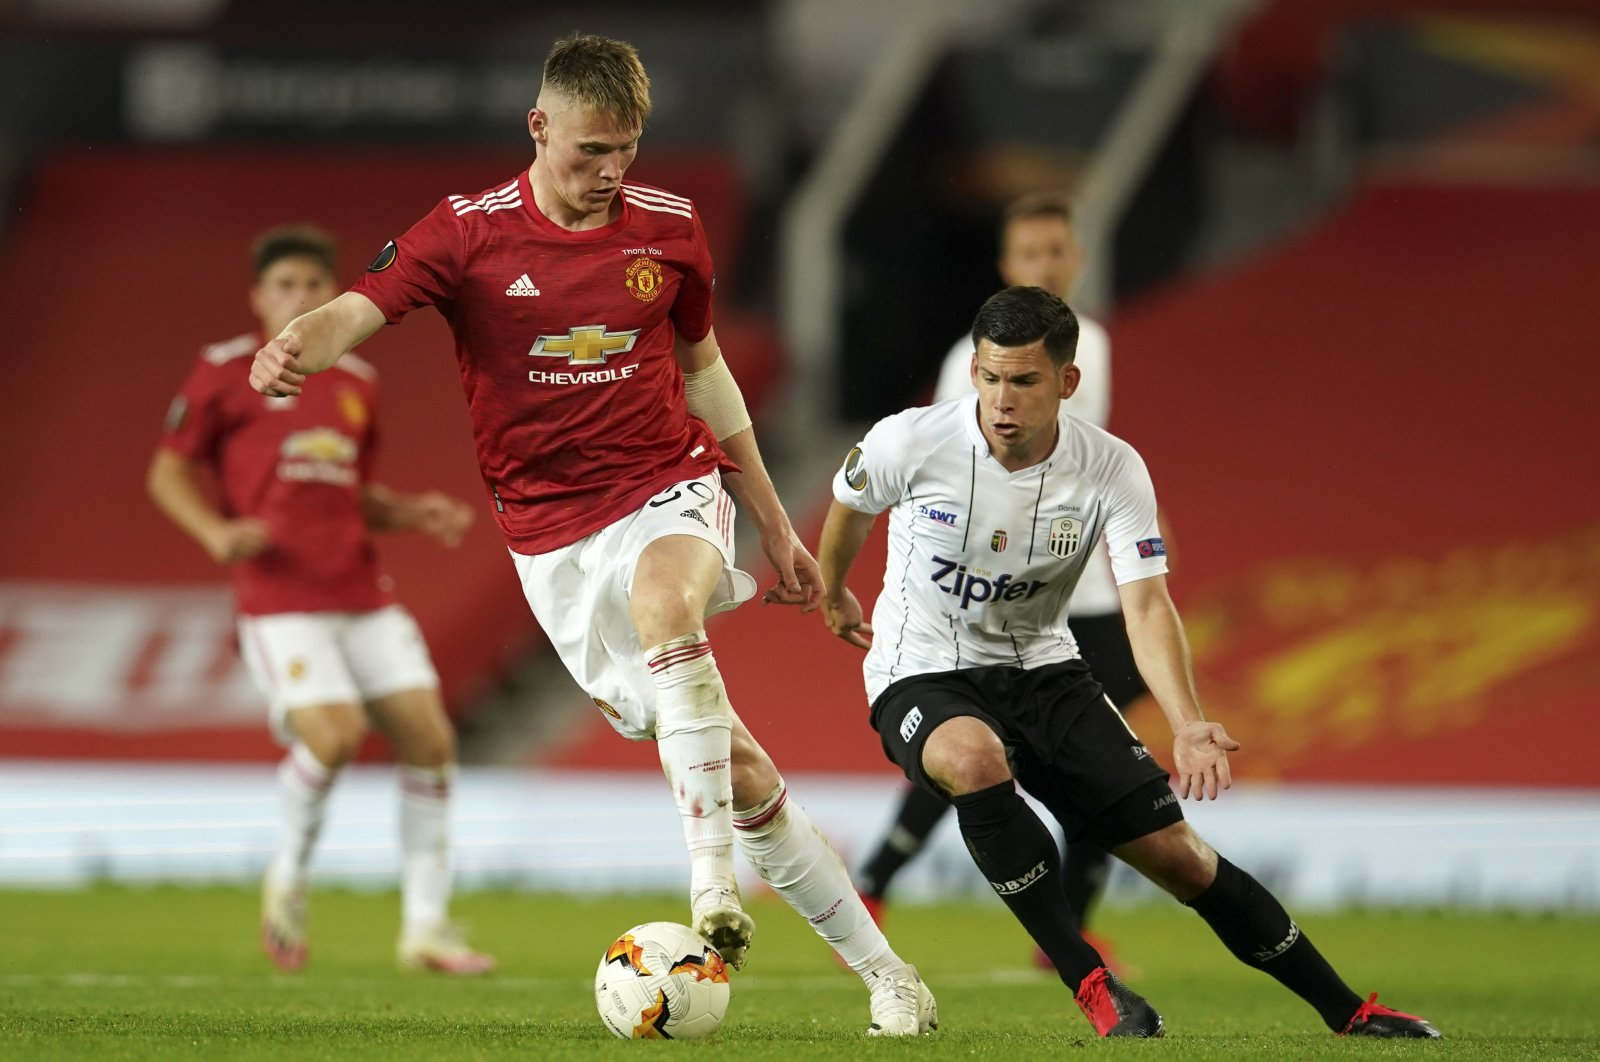 Manchester United's Scott McTominay (L), and LASK's Peter Michorl battle for the ball during the Europa League round of 16, second leg match in Manchester, England, Aug. 5, 2020. (AP Photo)